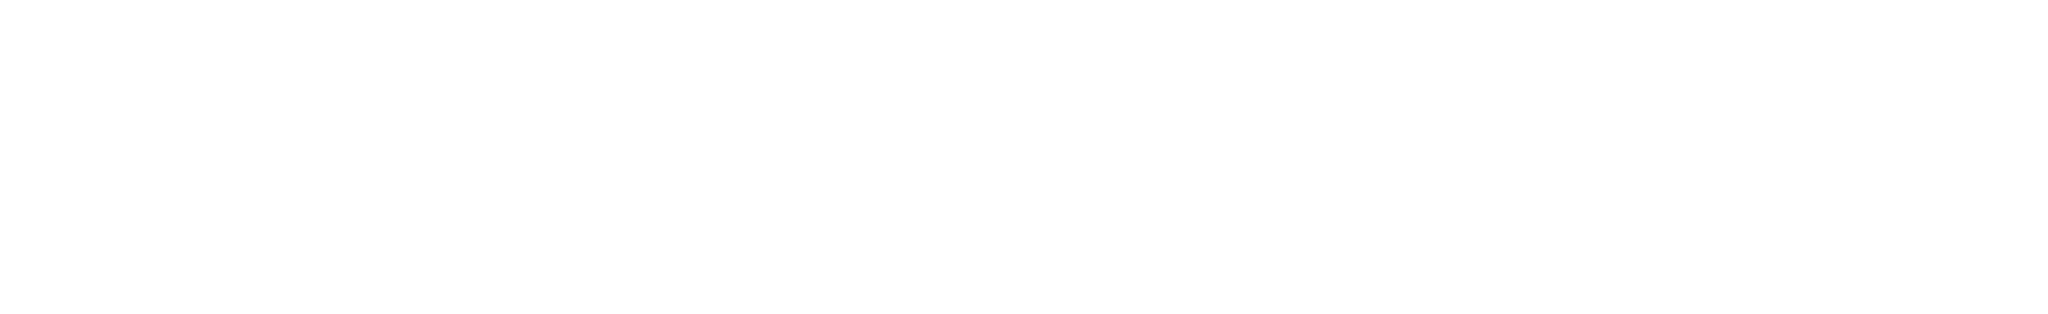 auto-motive.gr – Auto Moto & Bike Accessories